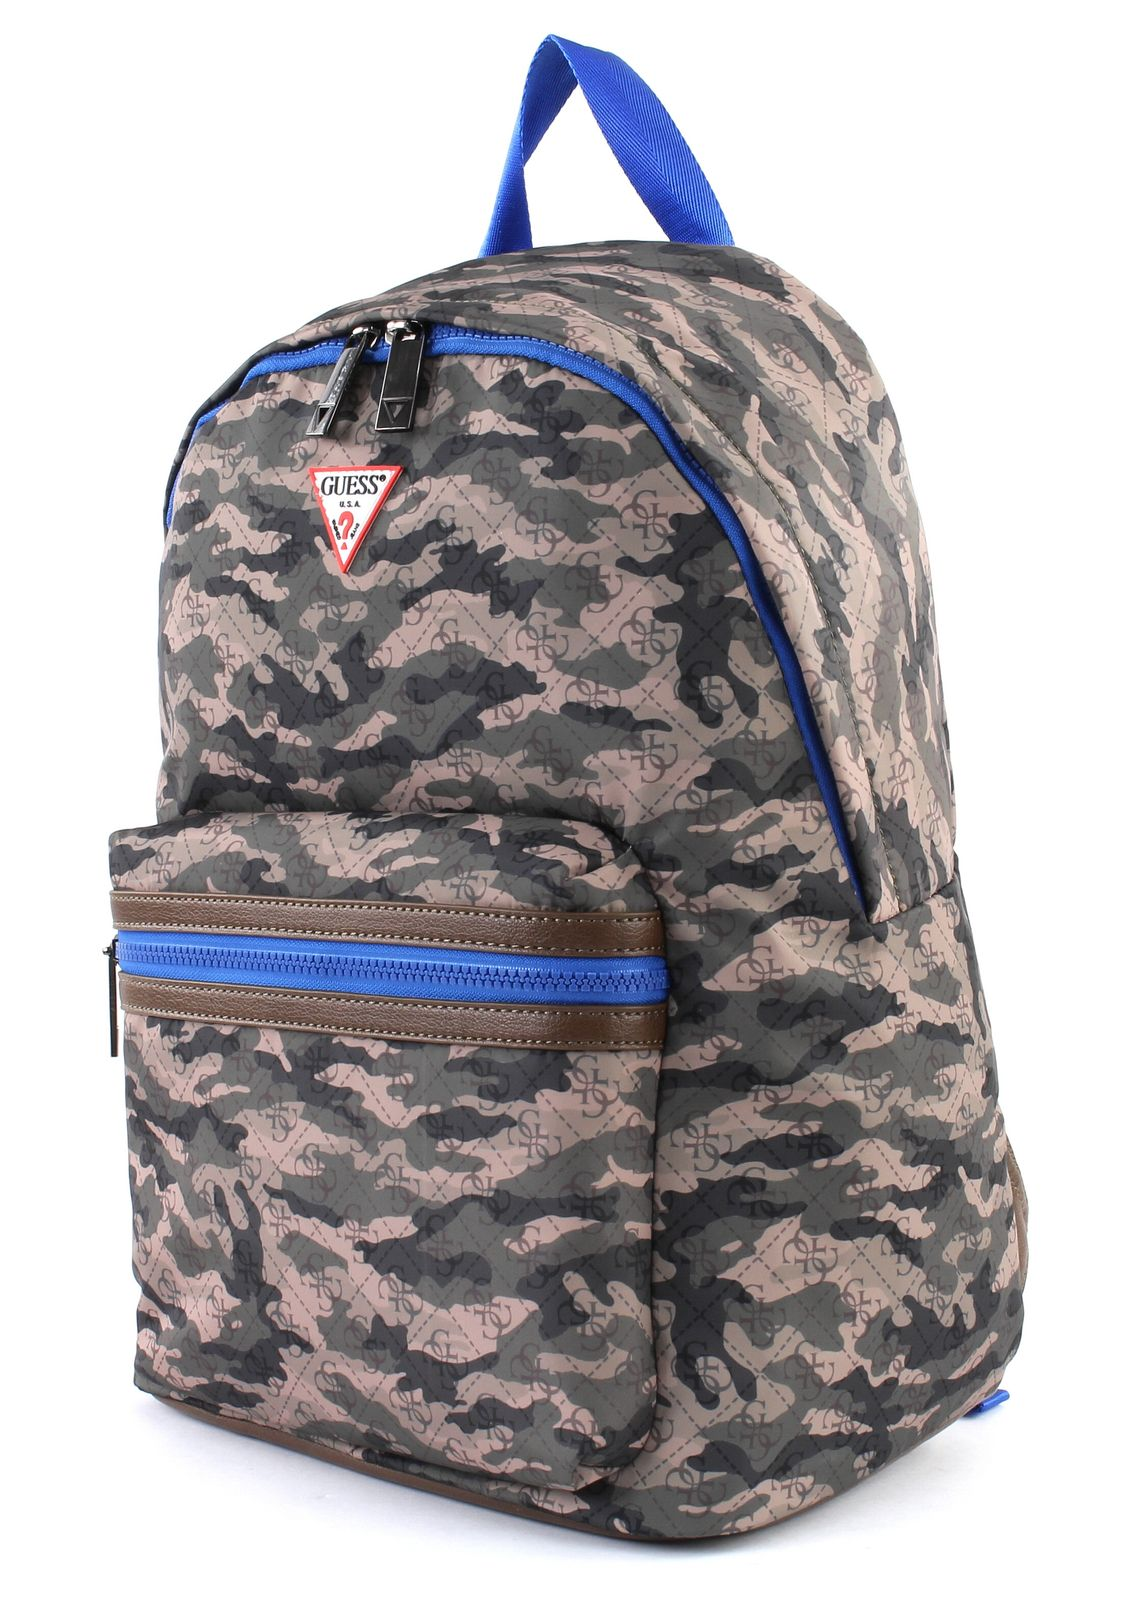 where to buy guess rucksack camouflage 2a8bb b2654